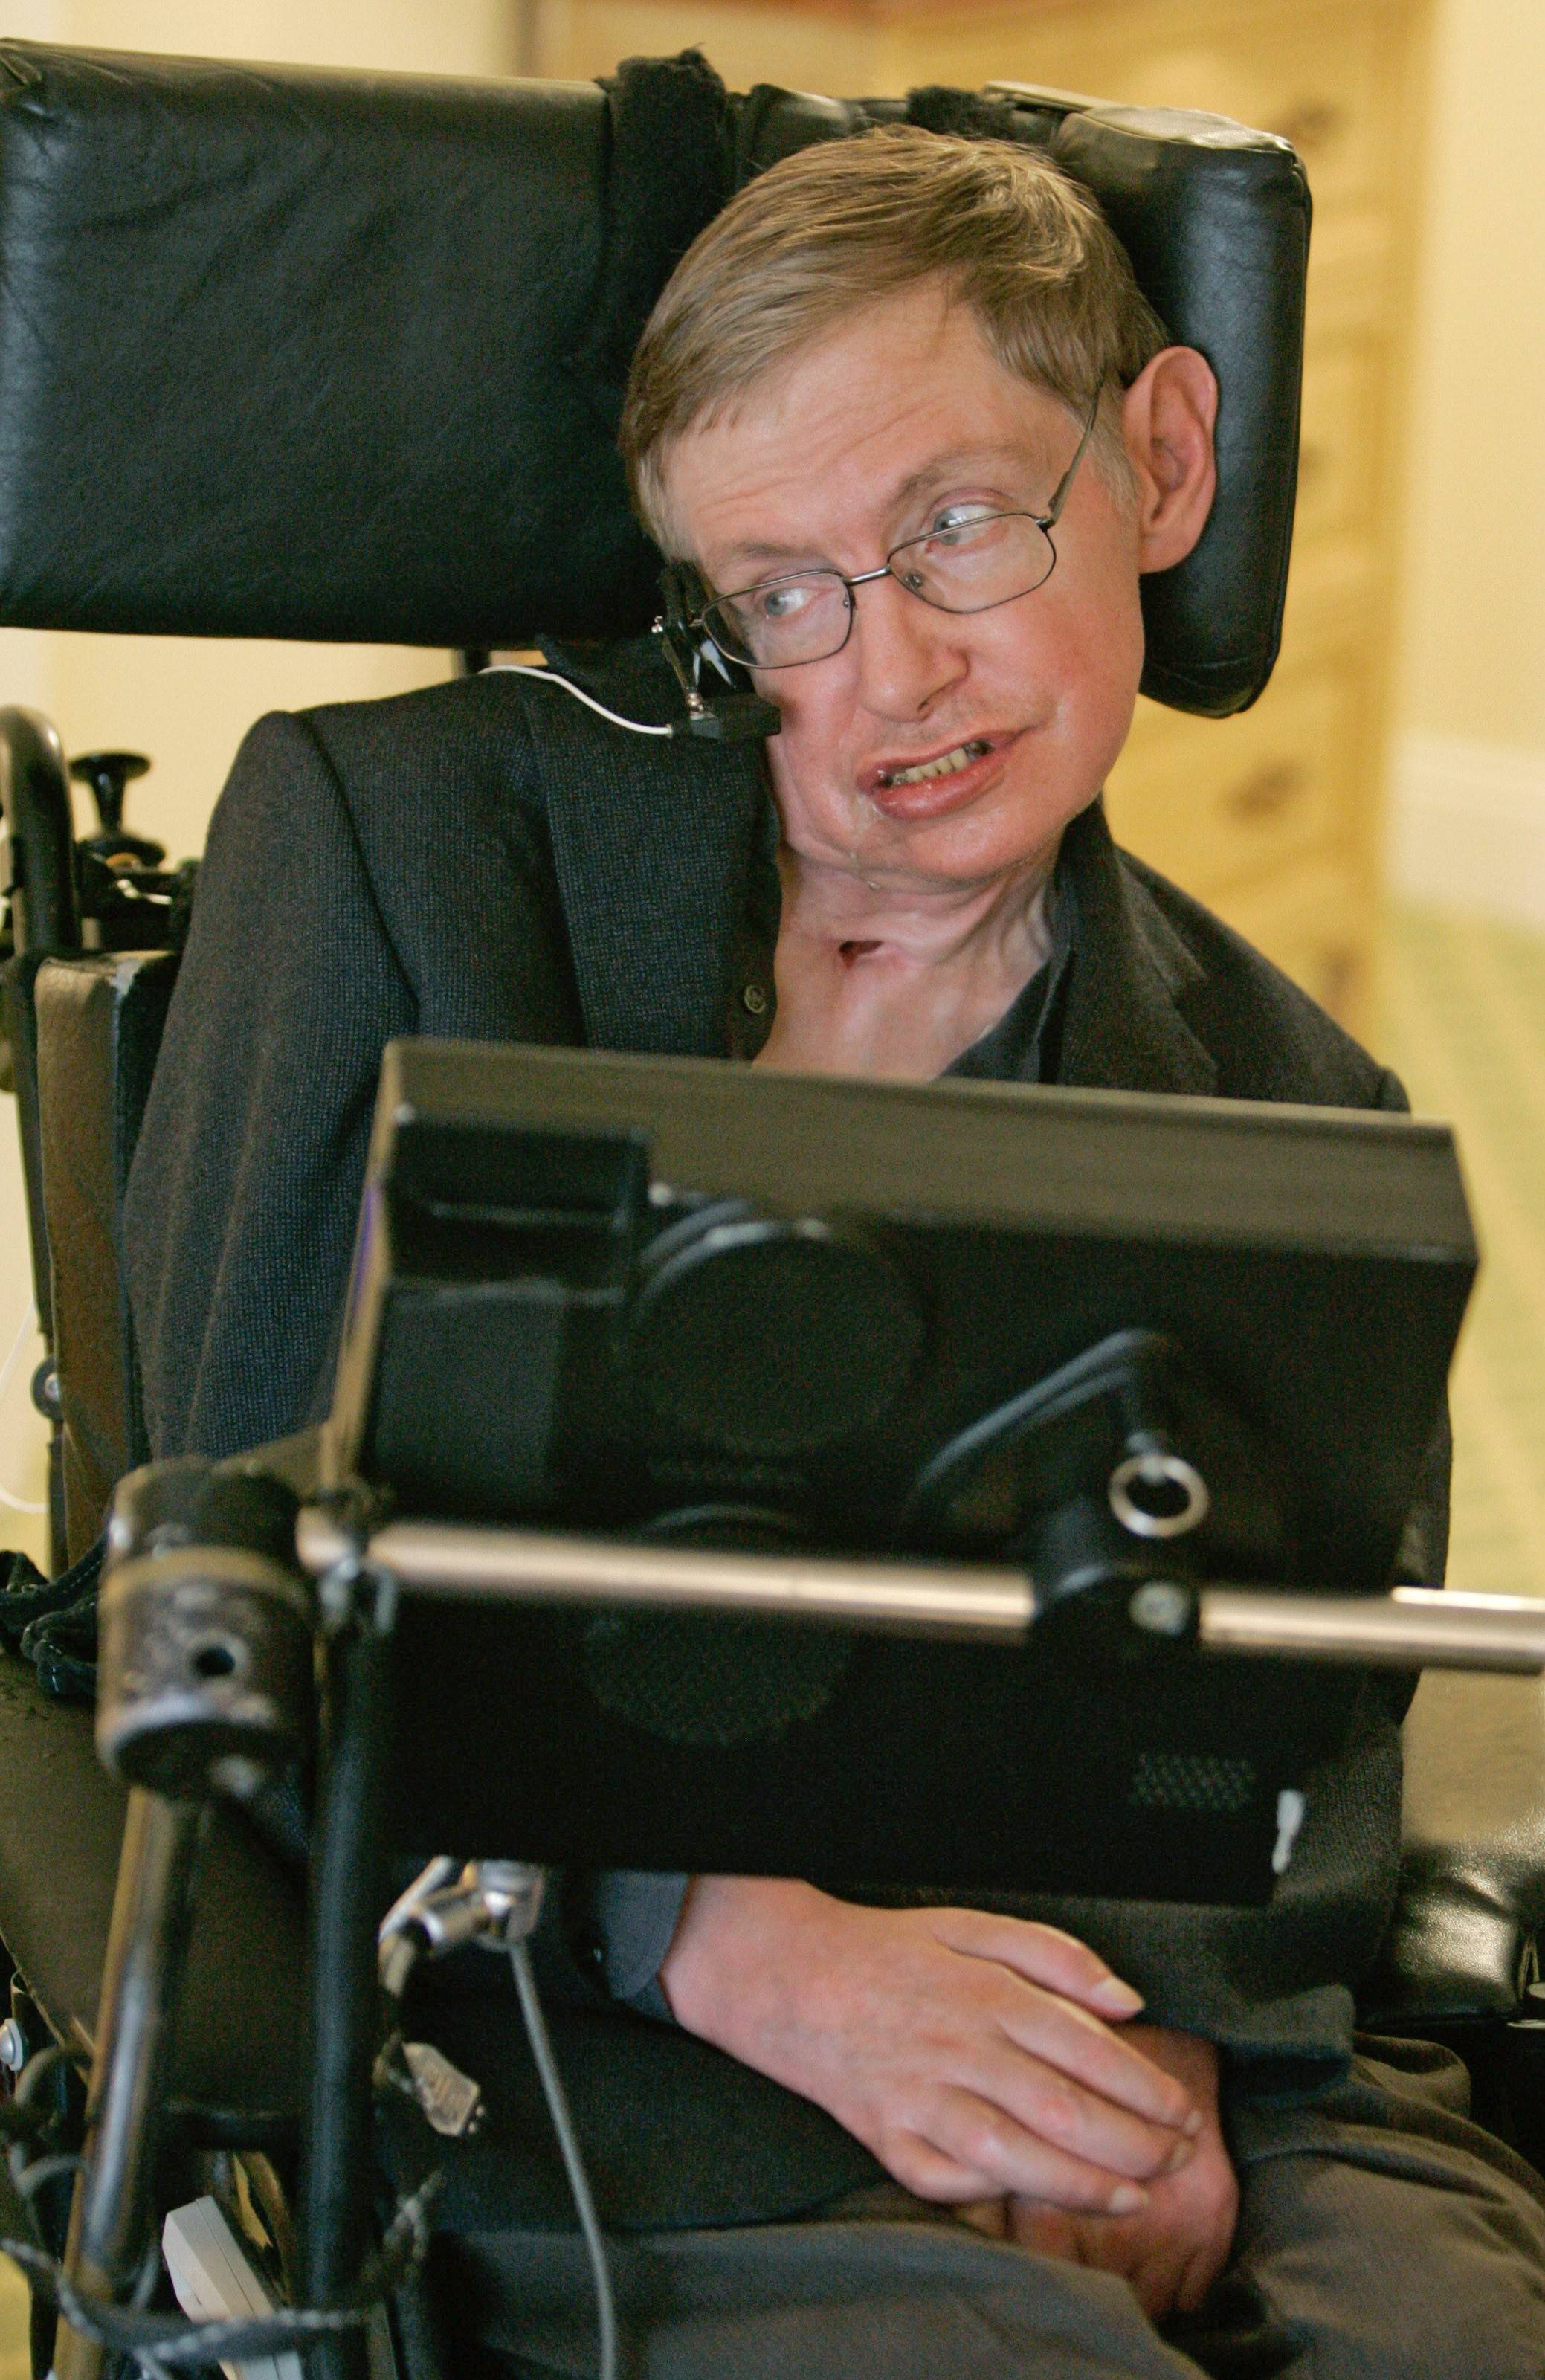 Theoretical physicist Stephen Hawking dead at 76